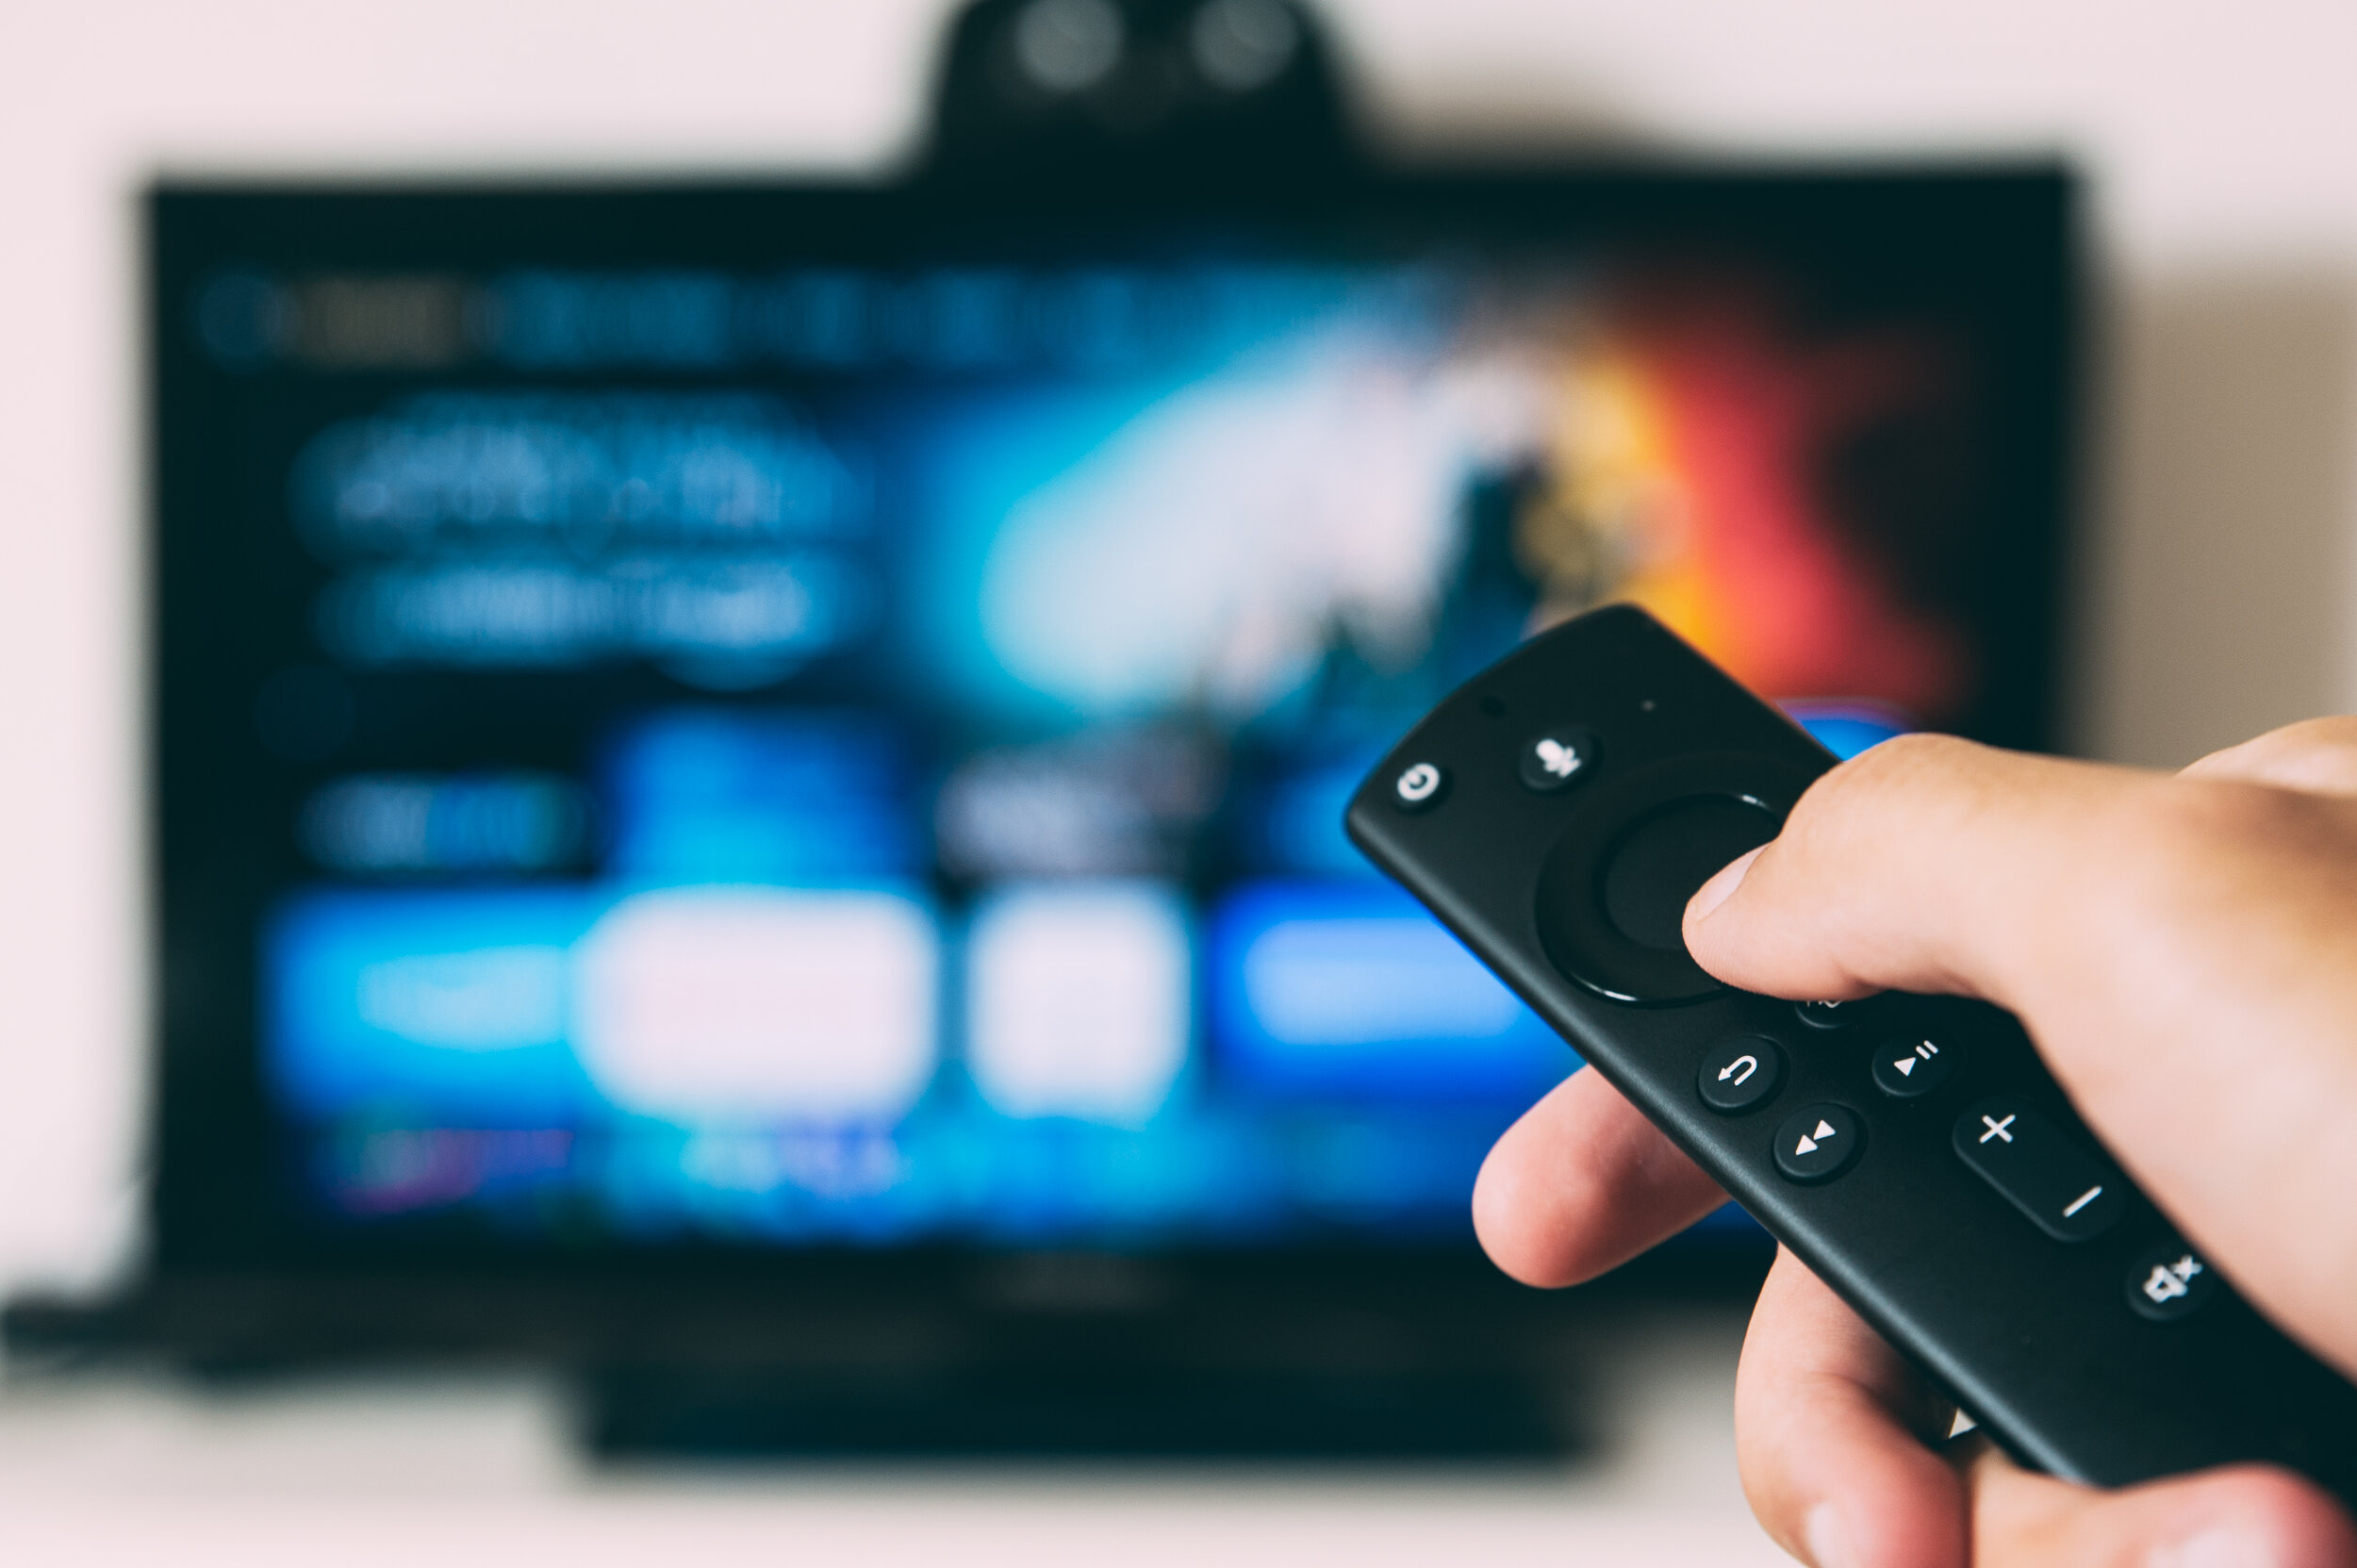 hand holding a remote in front of a blurred television